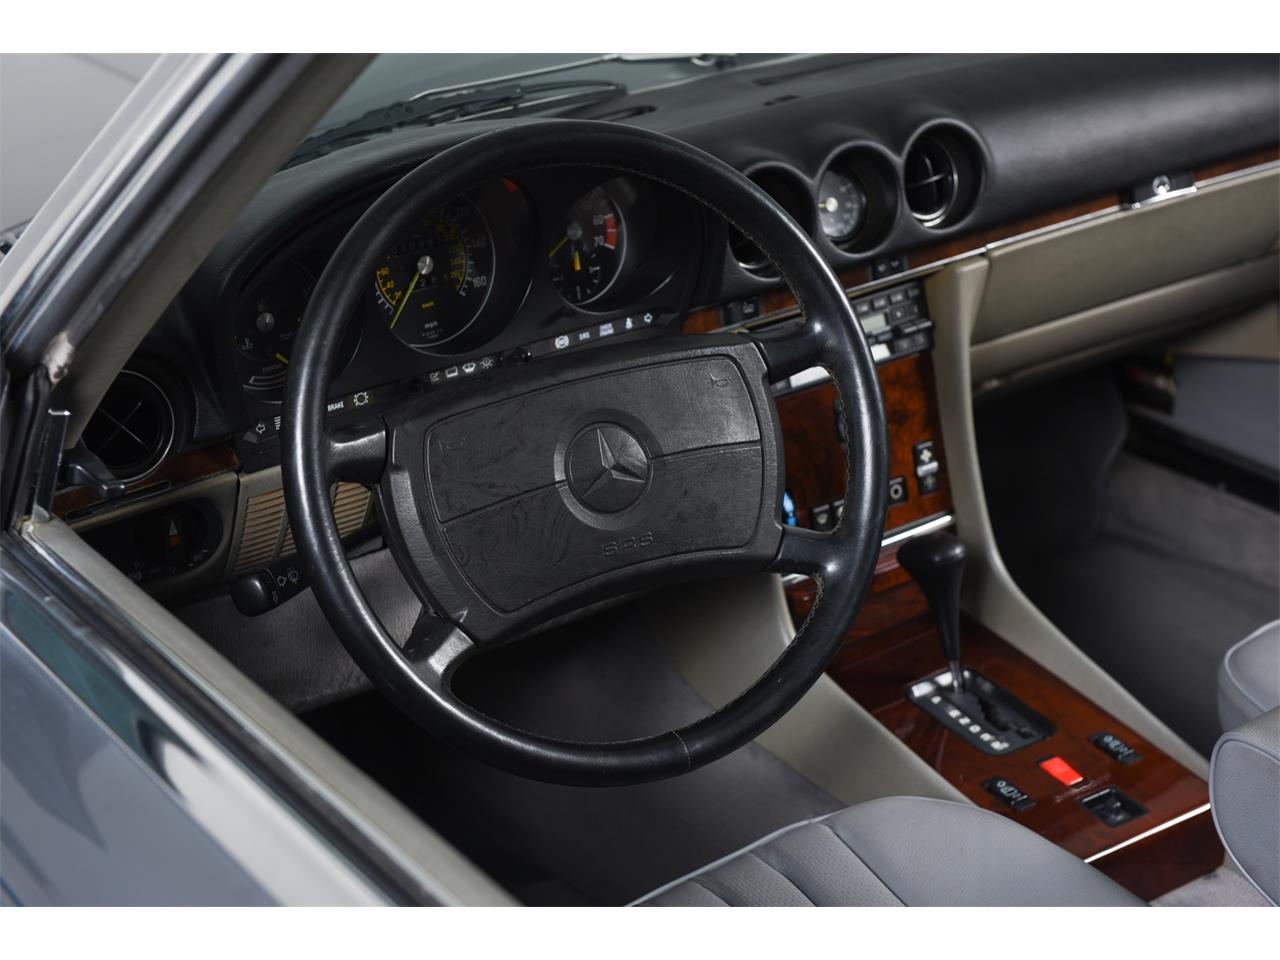 1988 Mercedes-Benz 560 for sale in Farmingdale, NY – photo 21